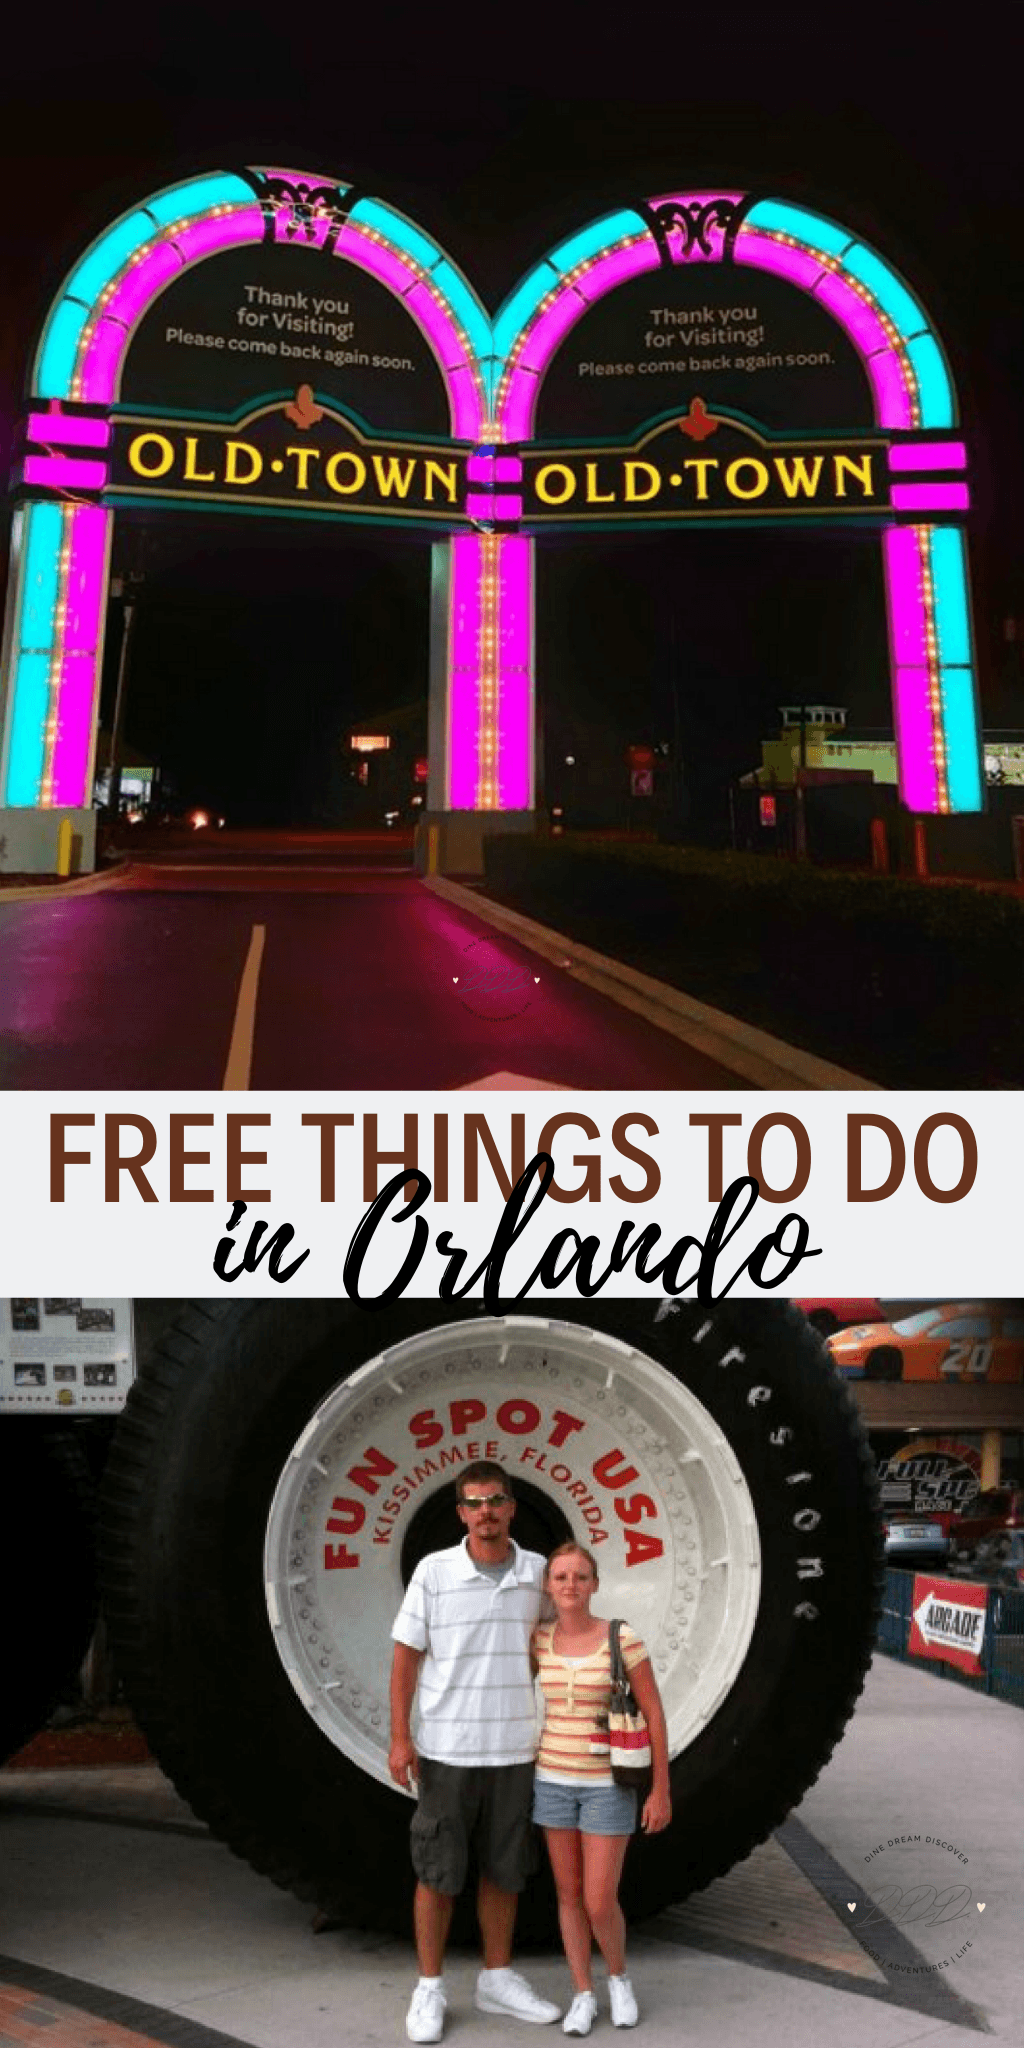 If you're looking for fun ways to entertain your family this summer, check out these 10 fun and free things to do in Orlando.